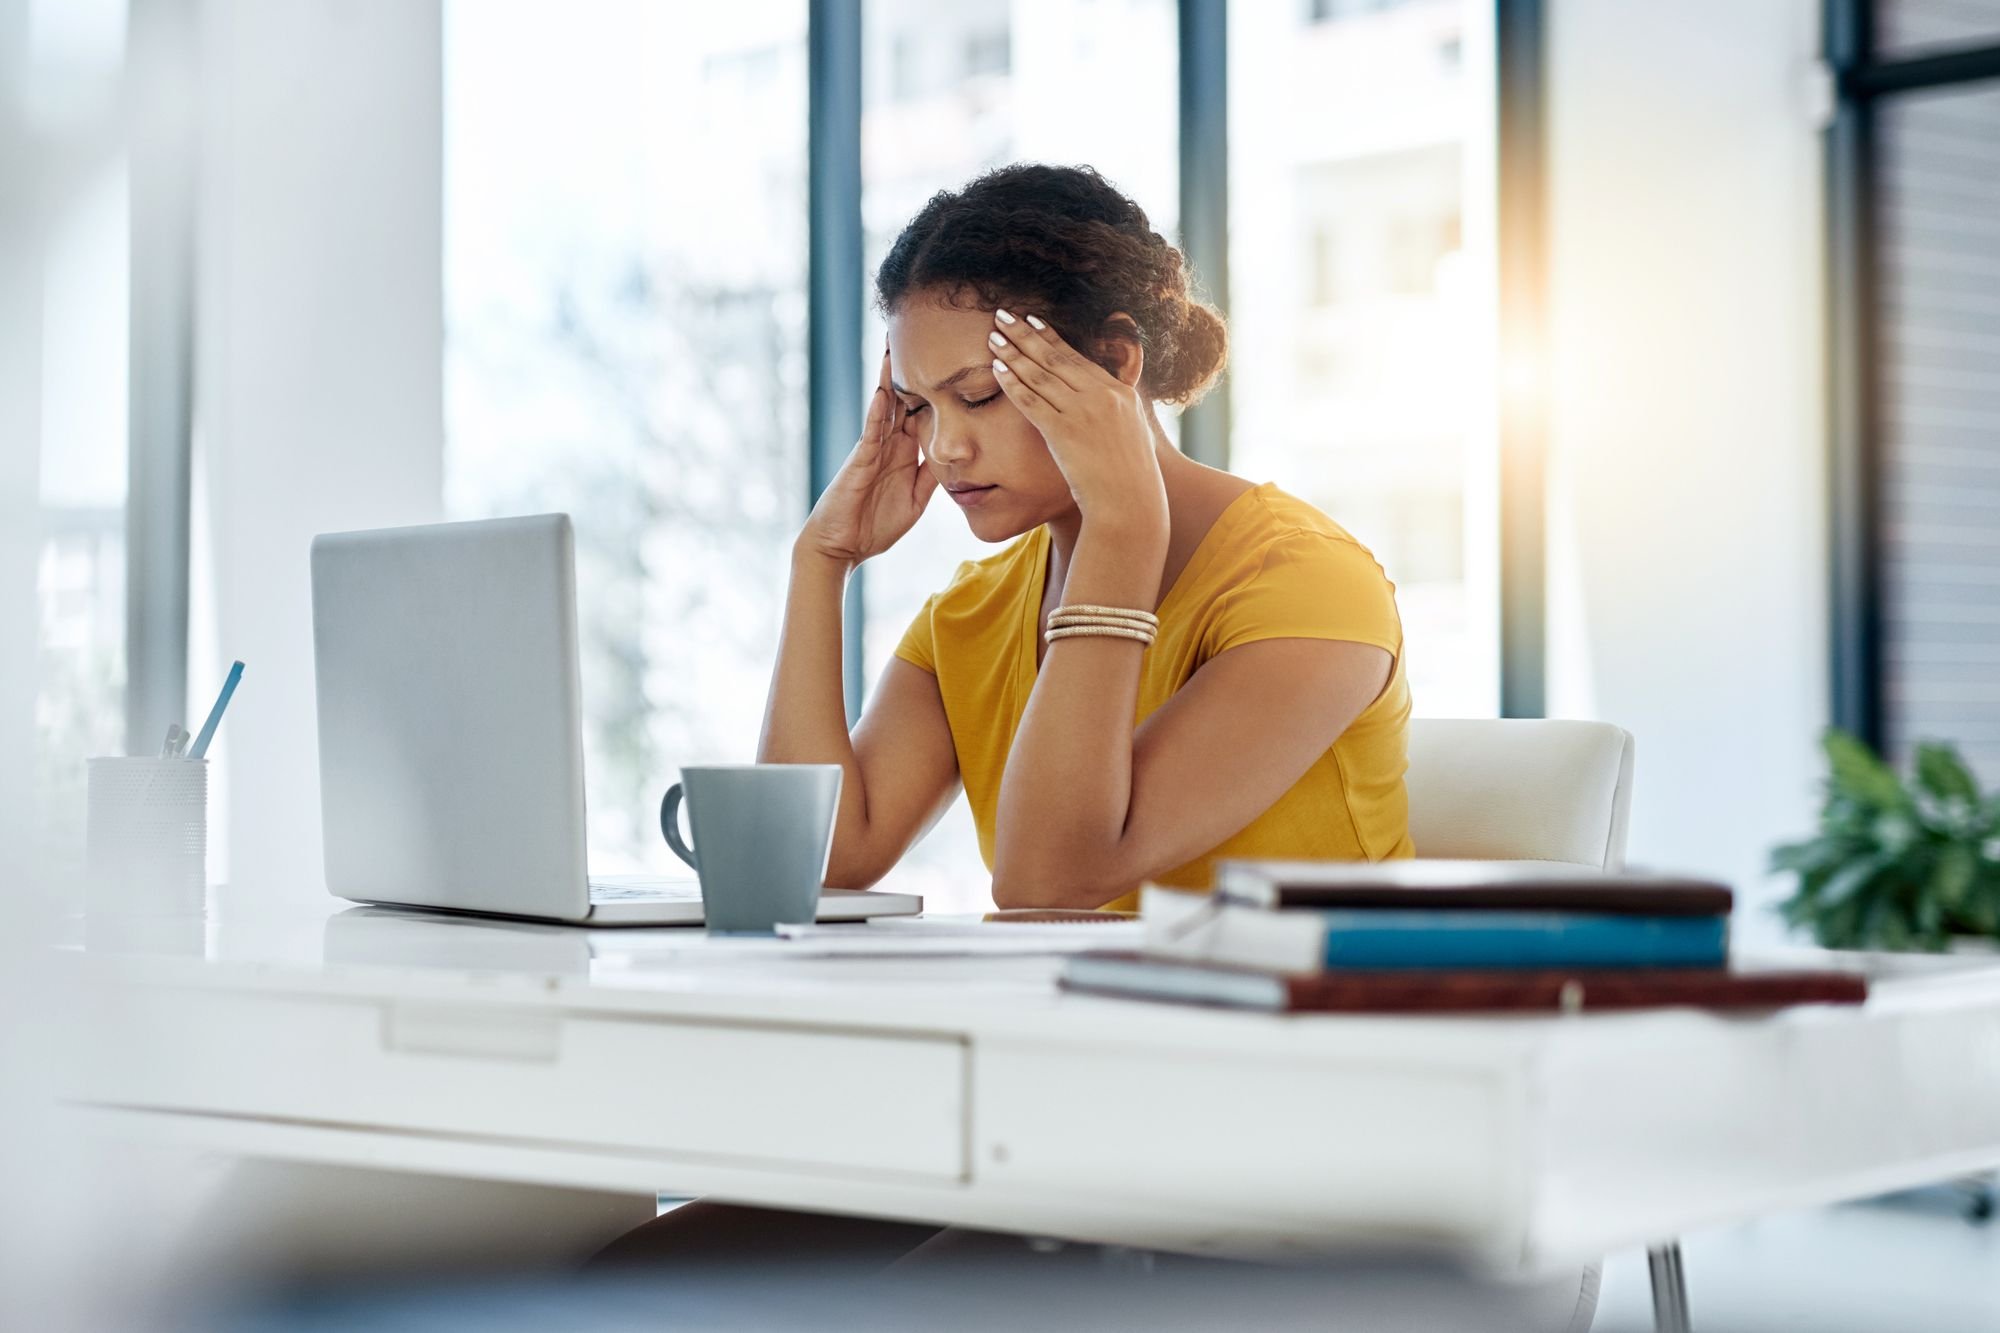 Get a Grip, Small Business Owners! 5 Tips to Help You Deal With Stress.